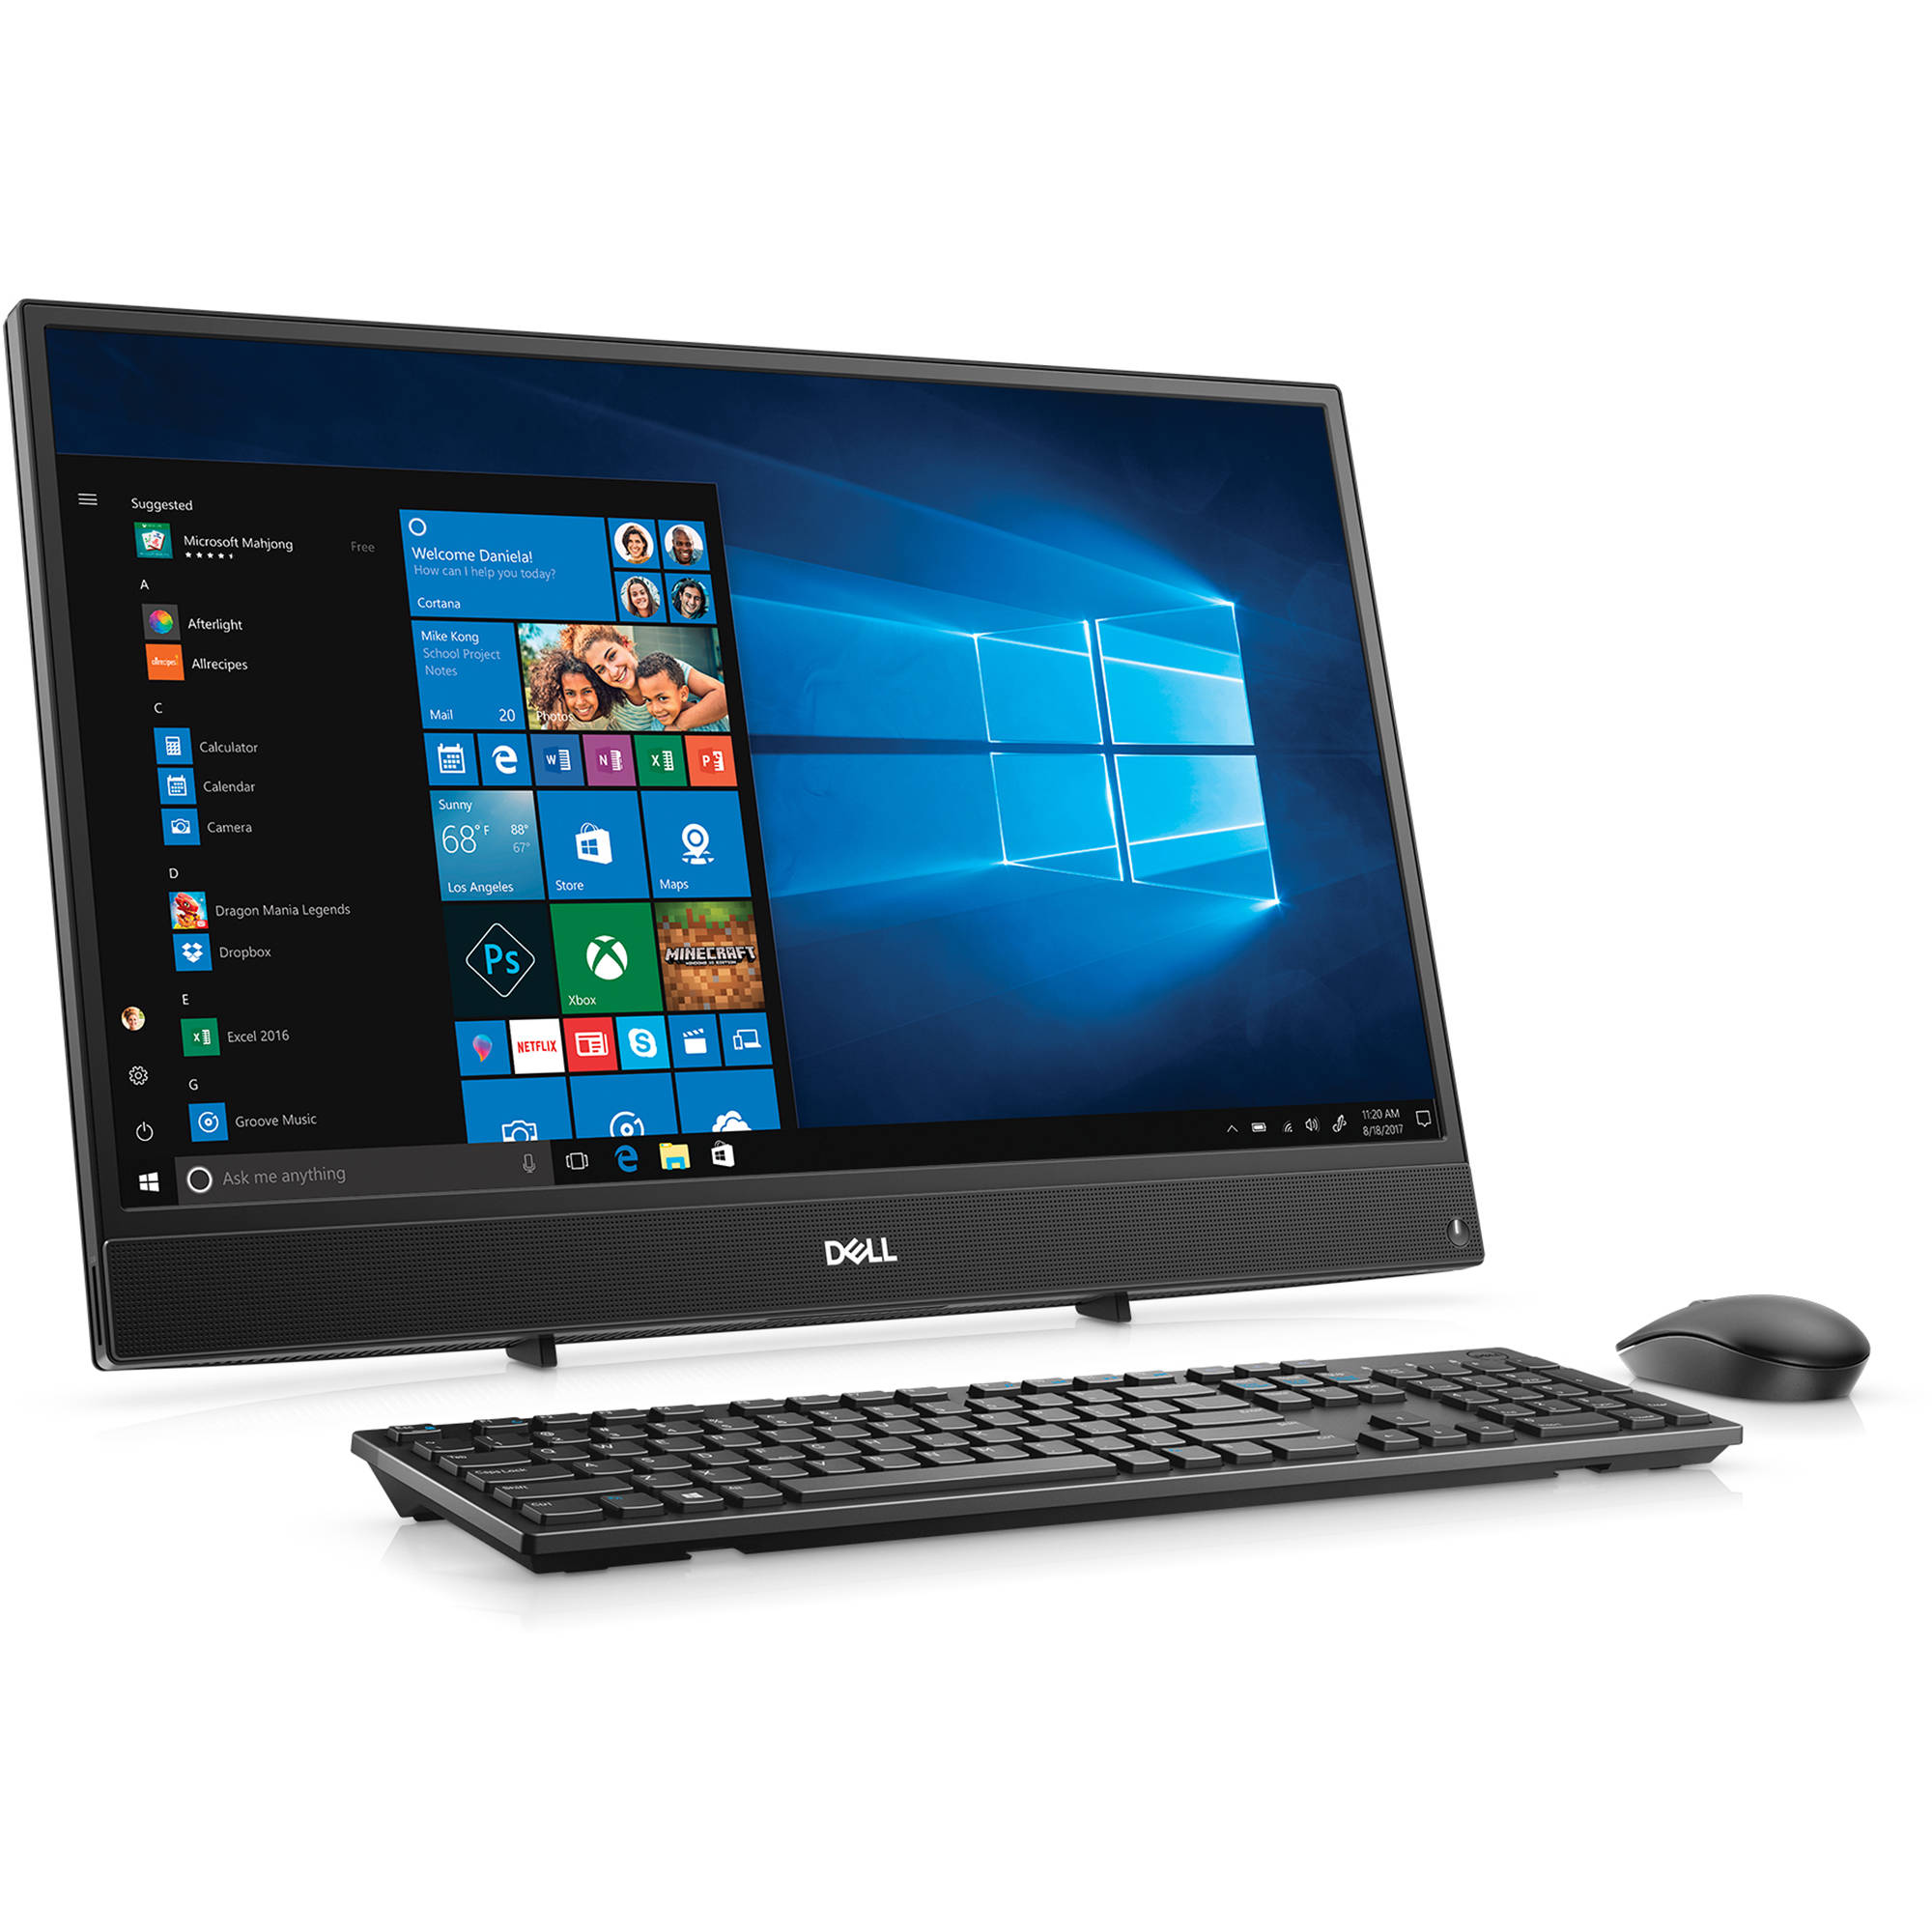 Dell 238 inspiron 24 3000 series i3477 5852blk bh photo dell 238 inspiron 24 3000 series multi touch all in one desktop sciox Gallery